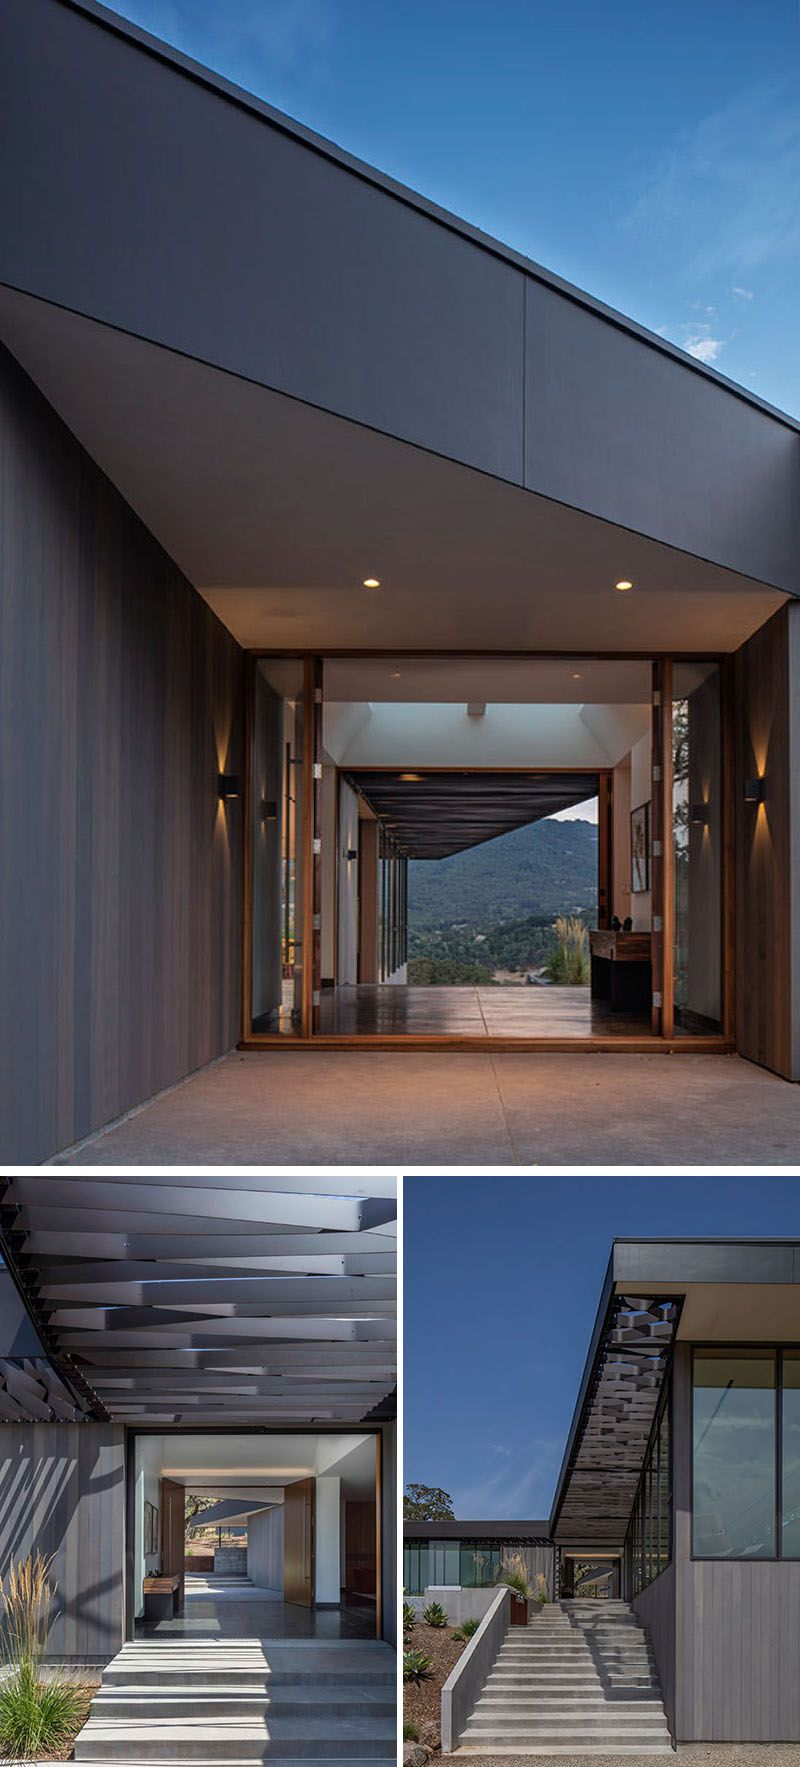 Schwartz And Architecture Have Designed A House With Sweeping Views ...